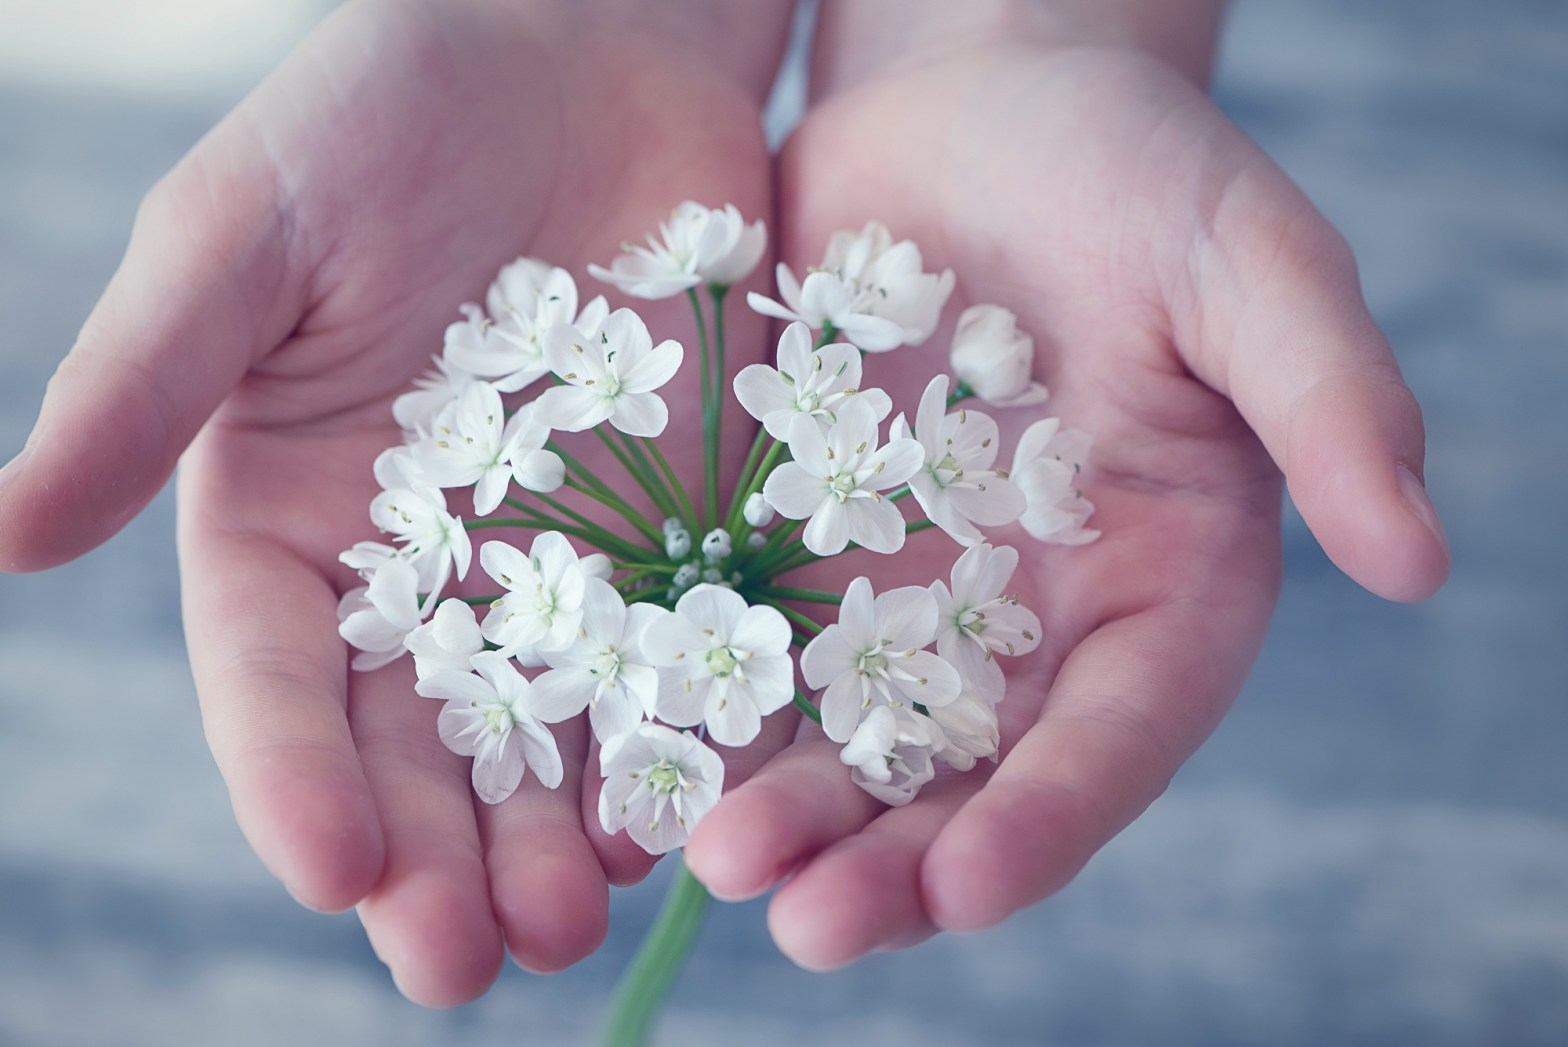 white flower in the palm